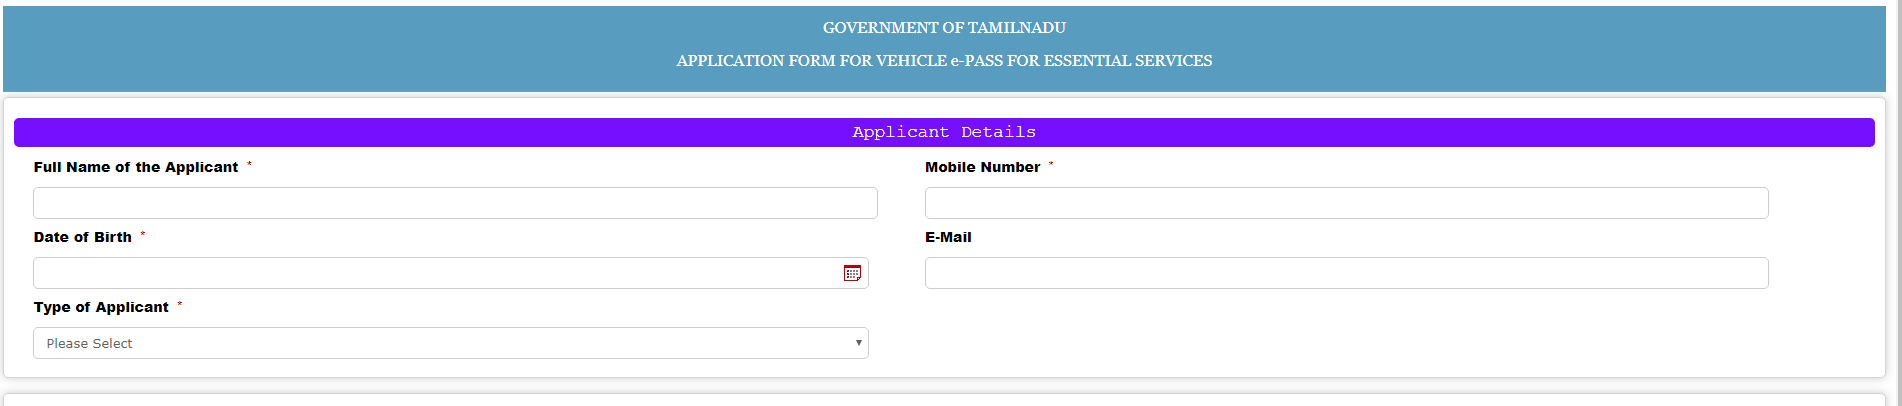 How to Apply for Vehicle Pass Online During Lockdown in TamilNadu